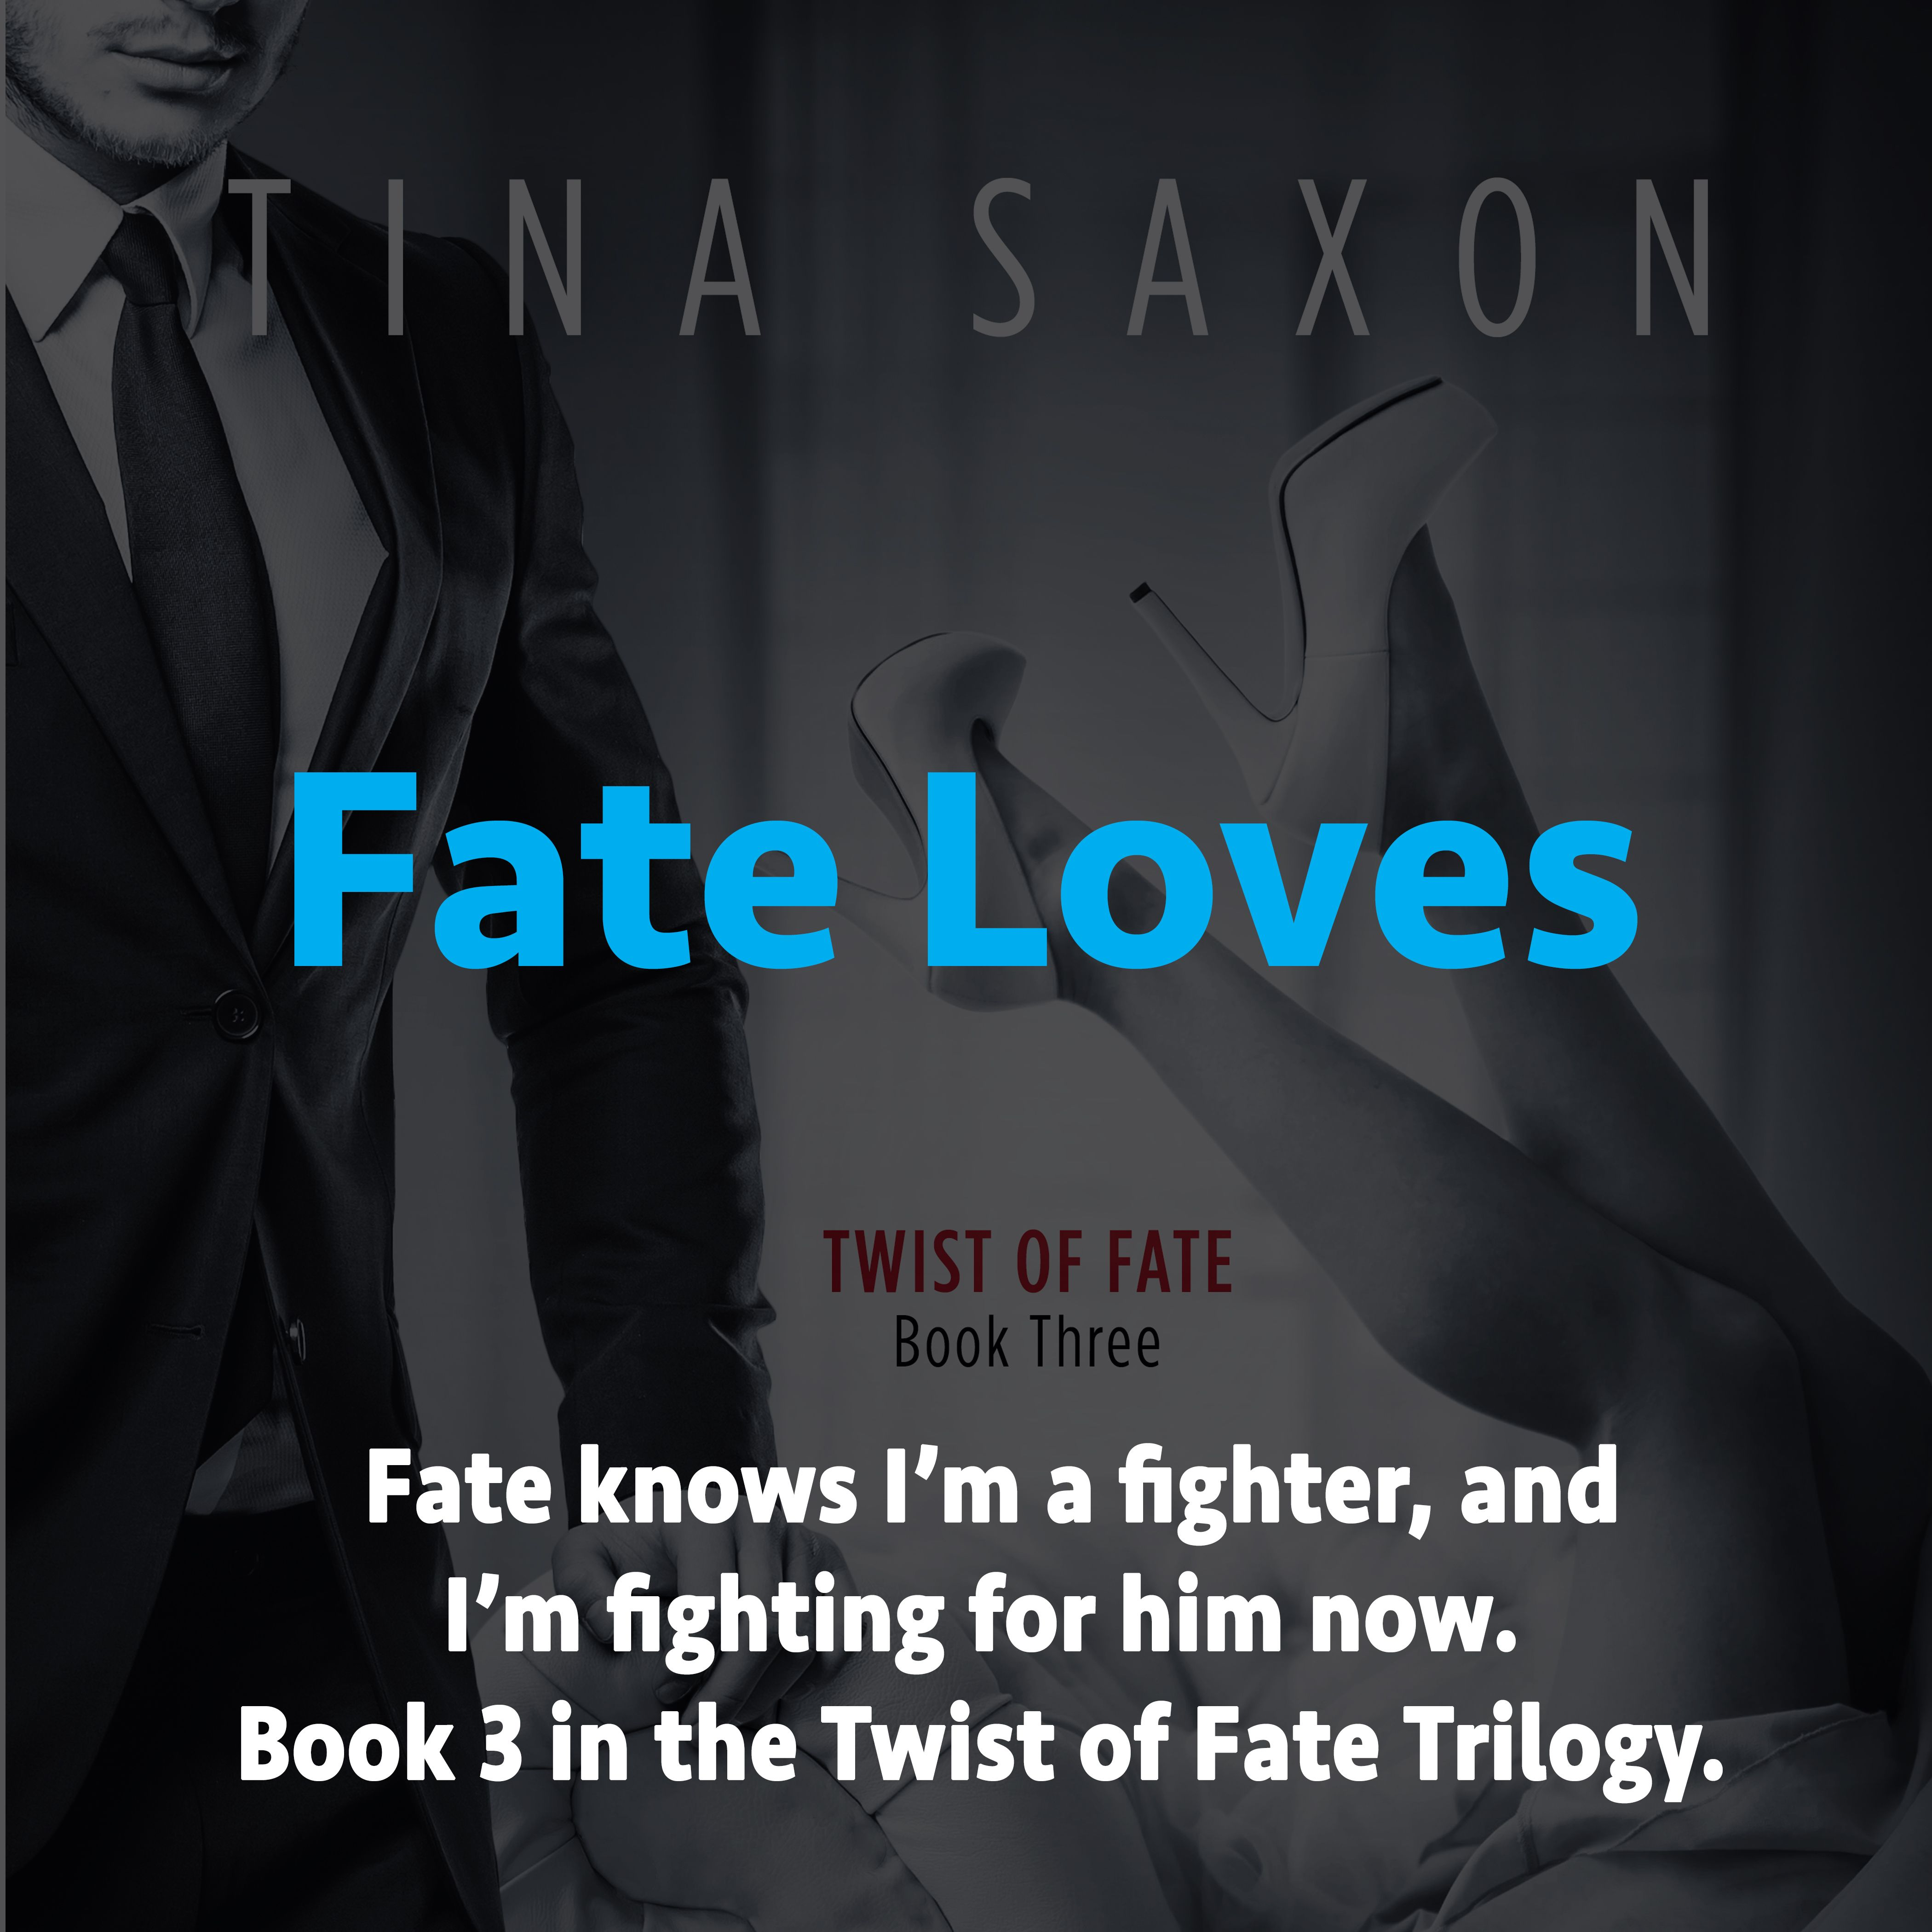 Pin by Tina Saxon on Fate Loves (Twist of Fate book 3